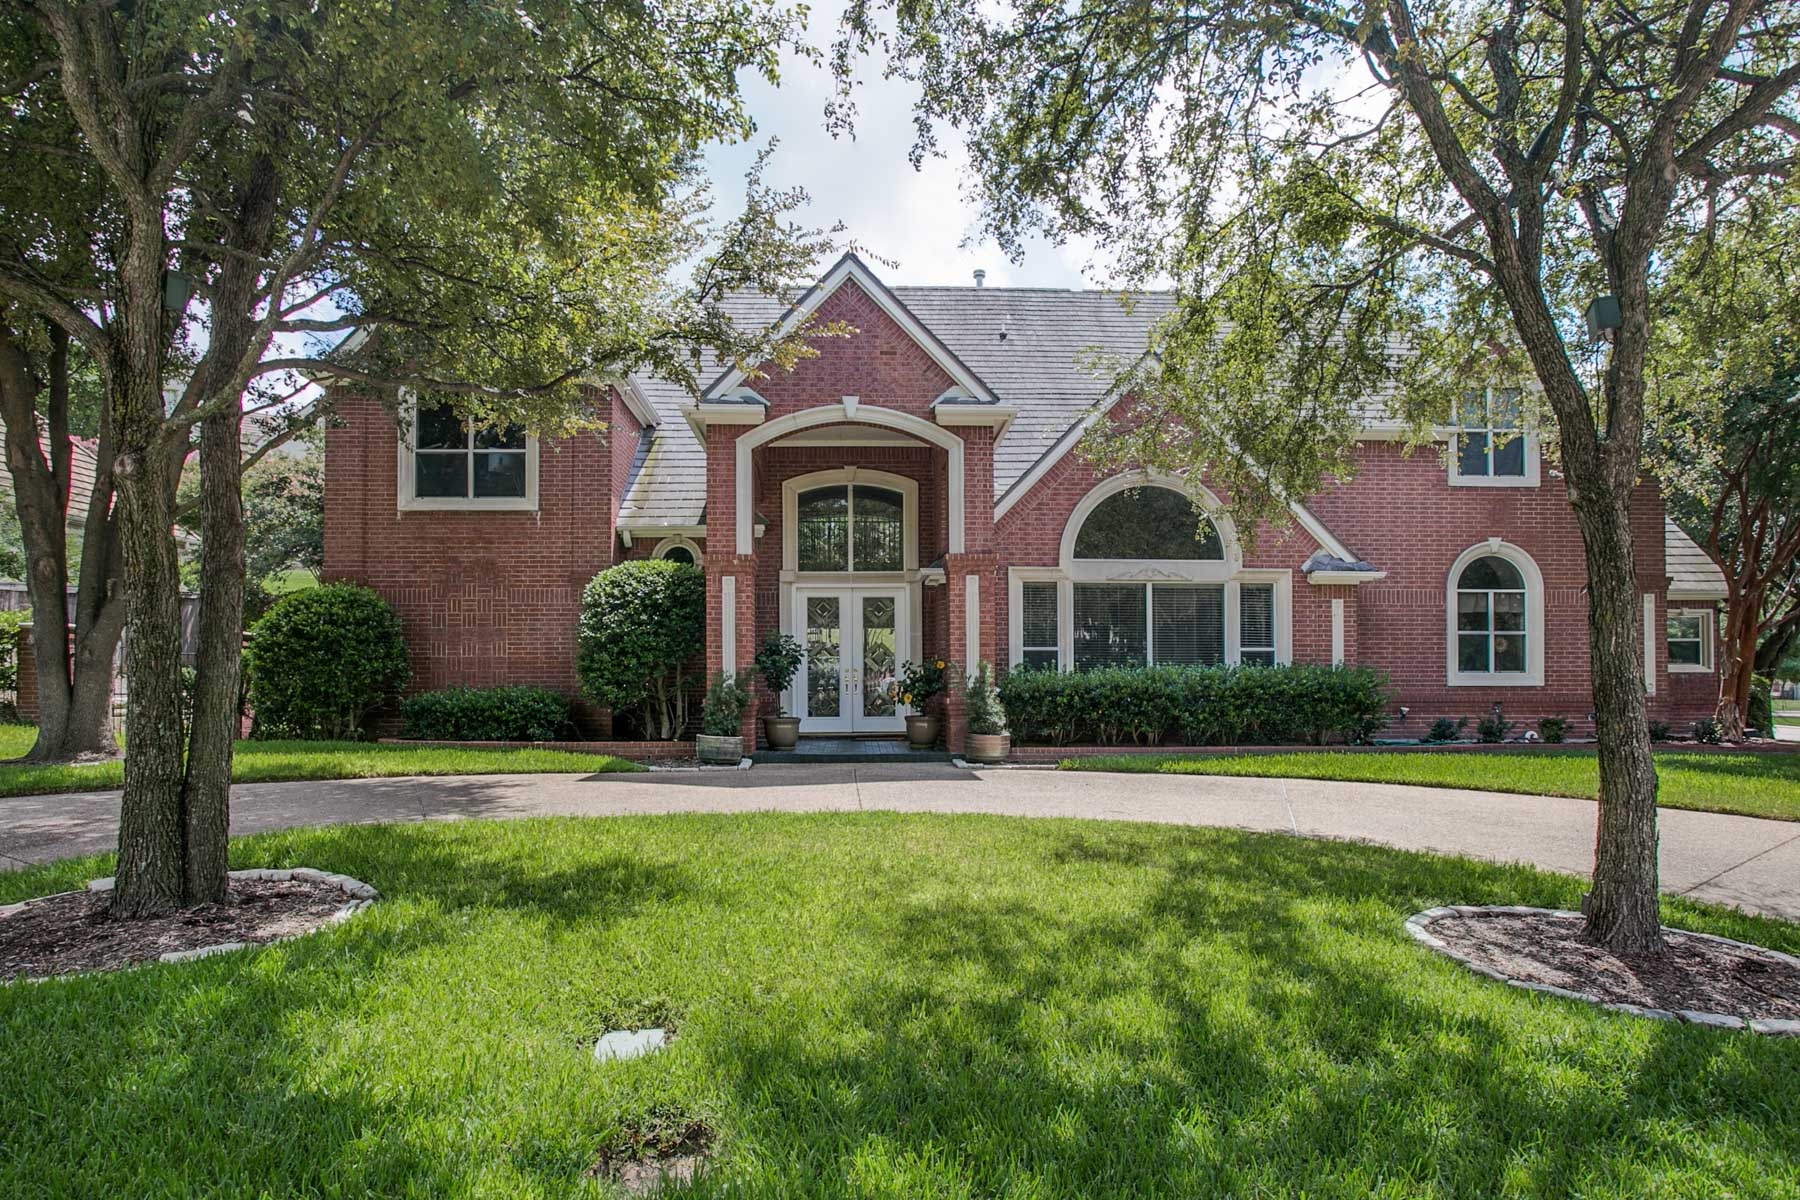 Single Family Home for Sale at Mira Vista Traditional 7029 Saucon Valley Drive, Fort Worth, Texas, 76132 United States